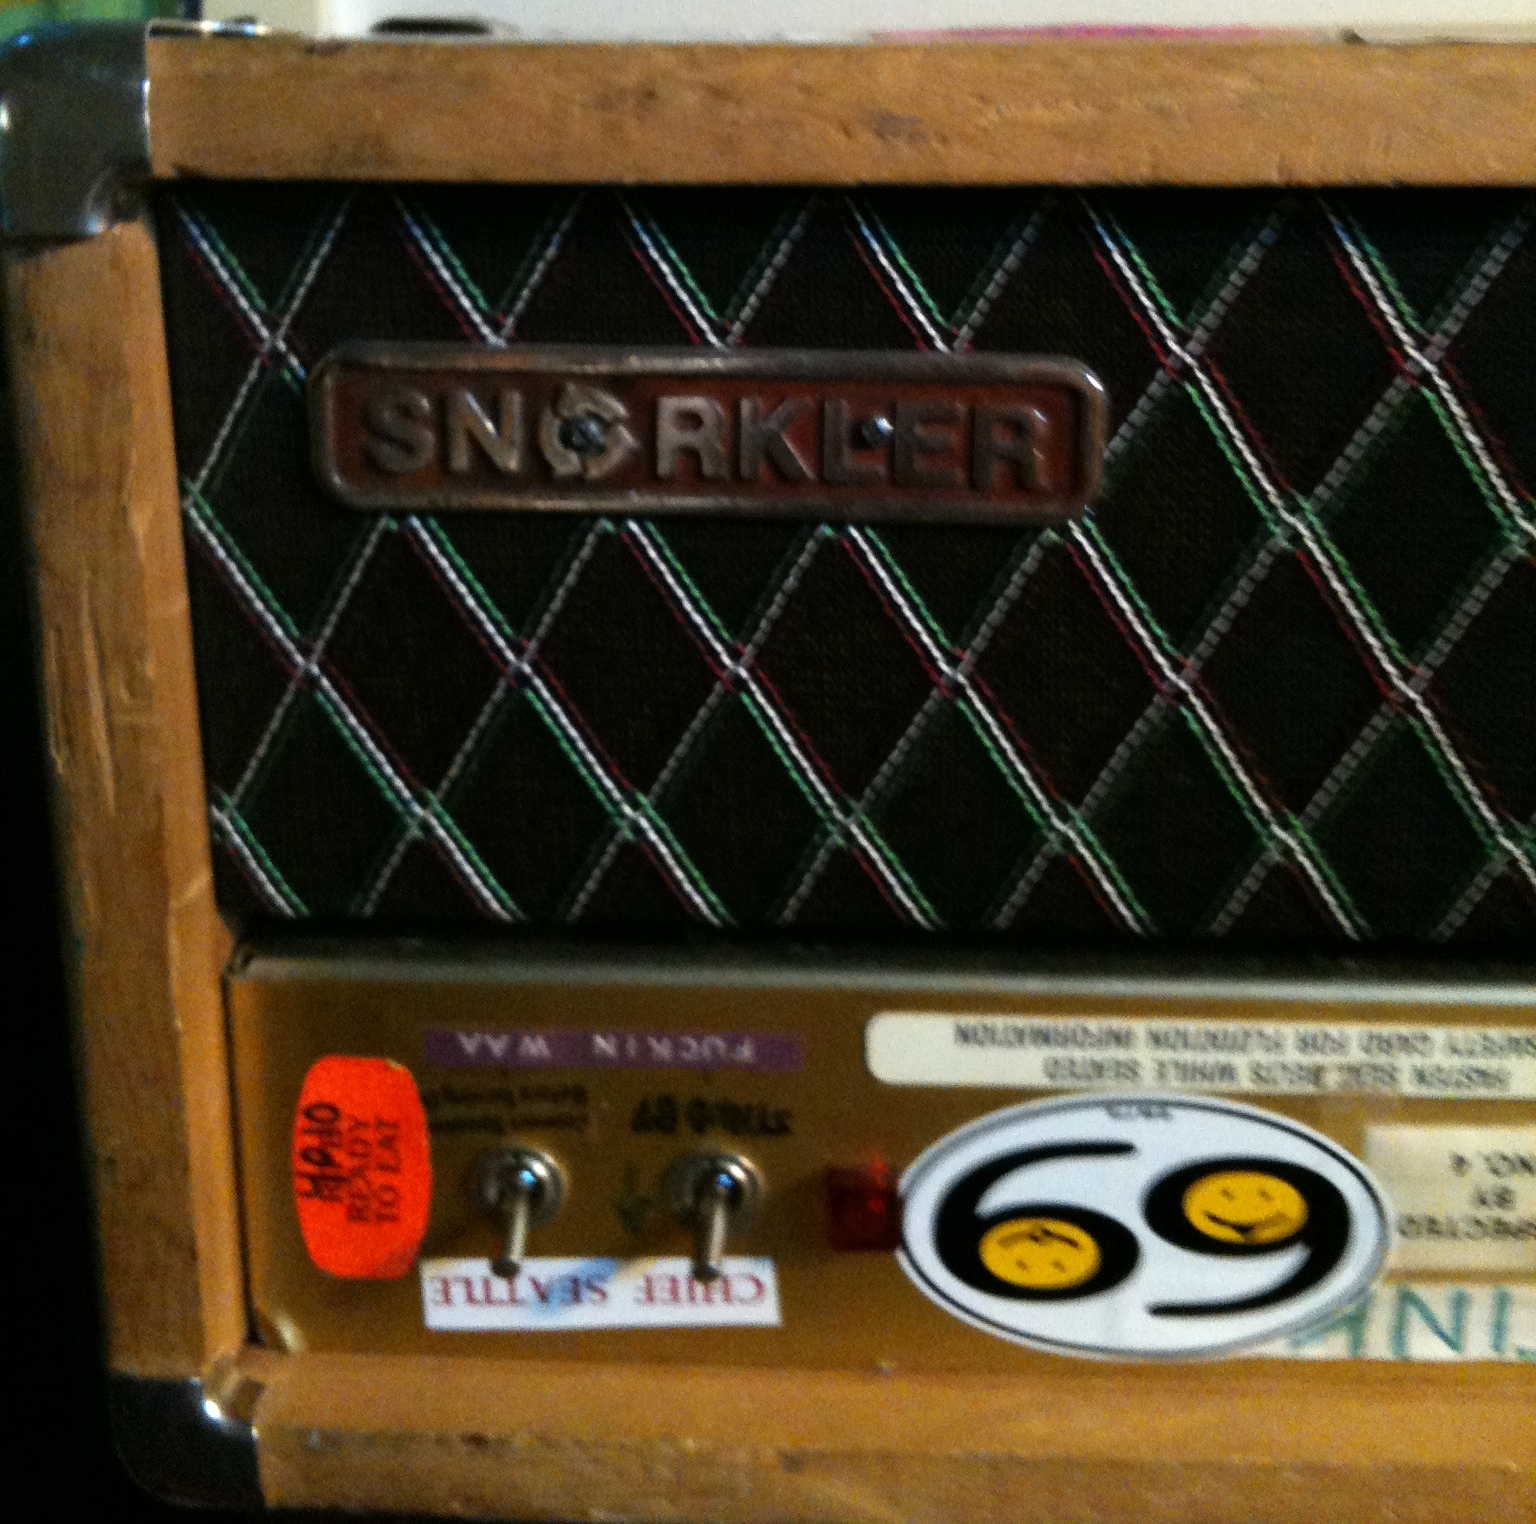 Ronnie Champagne's Modified Marshall JCM800 aka The Snorkler front